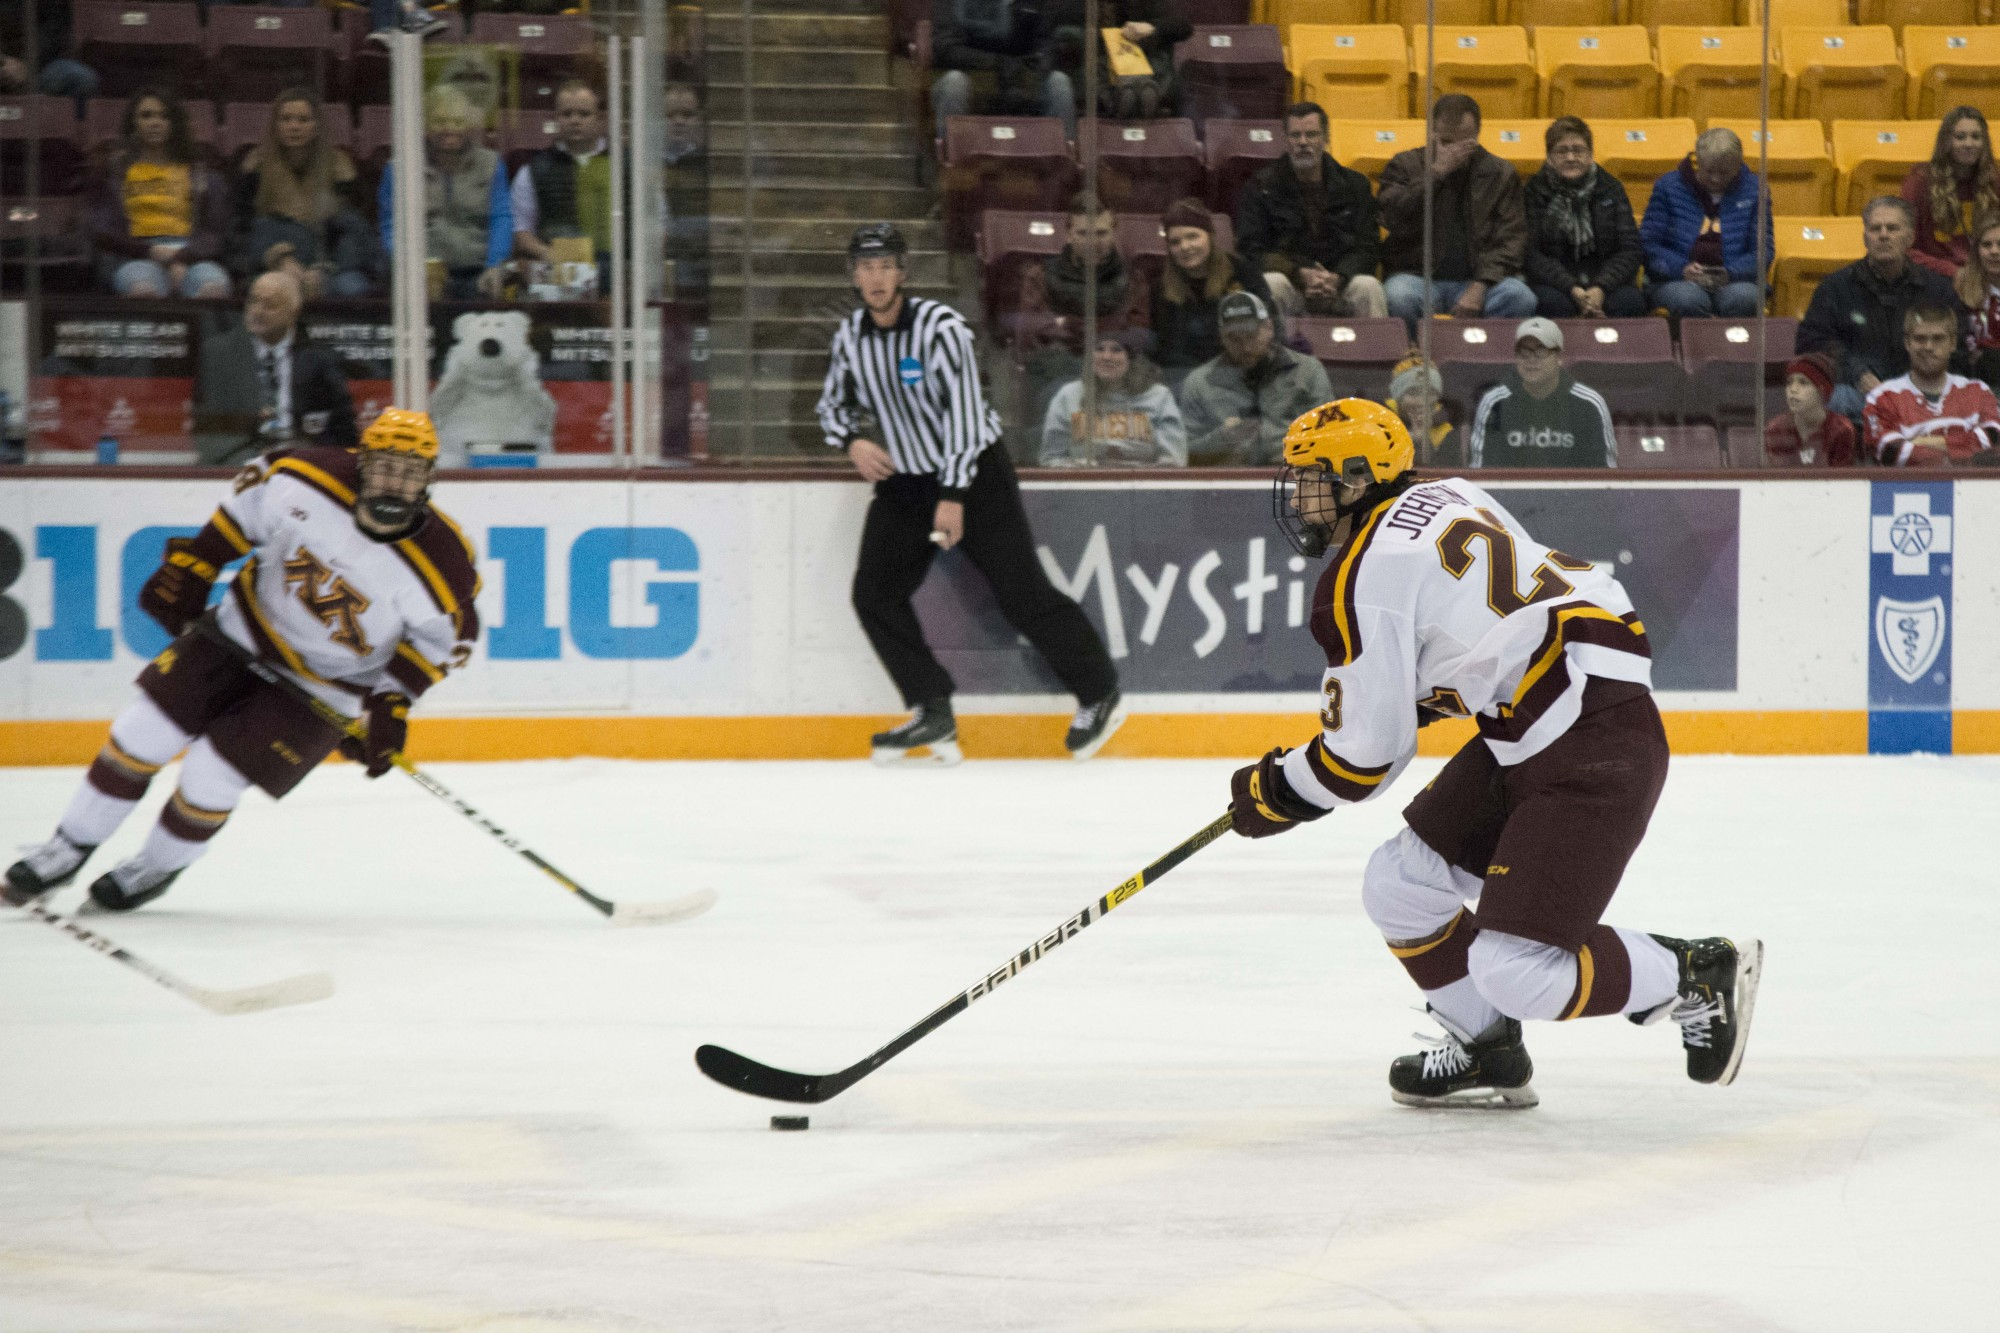 Defender Ryan Johnson skates with the puck during the game against the Wisconsin Badgers at 3M Arena at Mariucci on Friday, Nov. 22. The Gophers won 4-1.